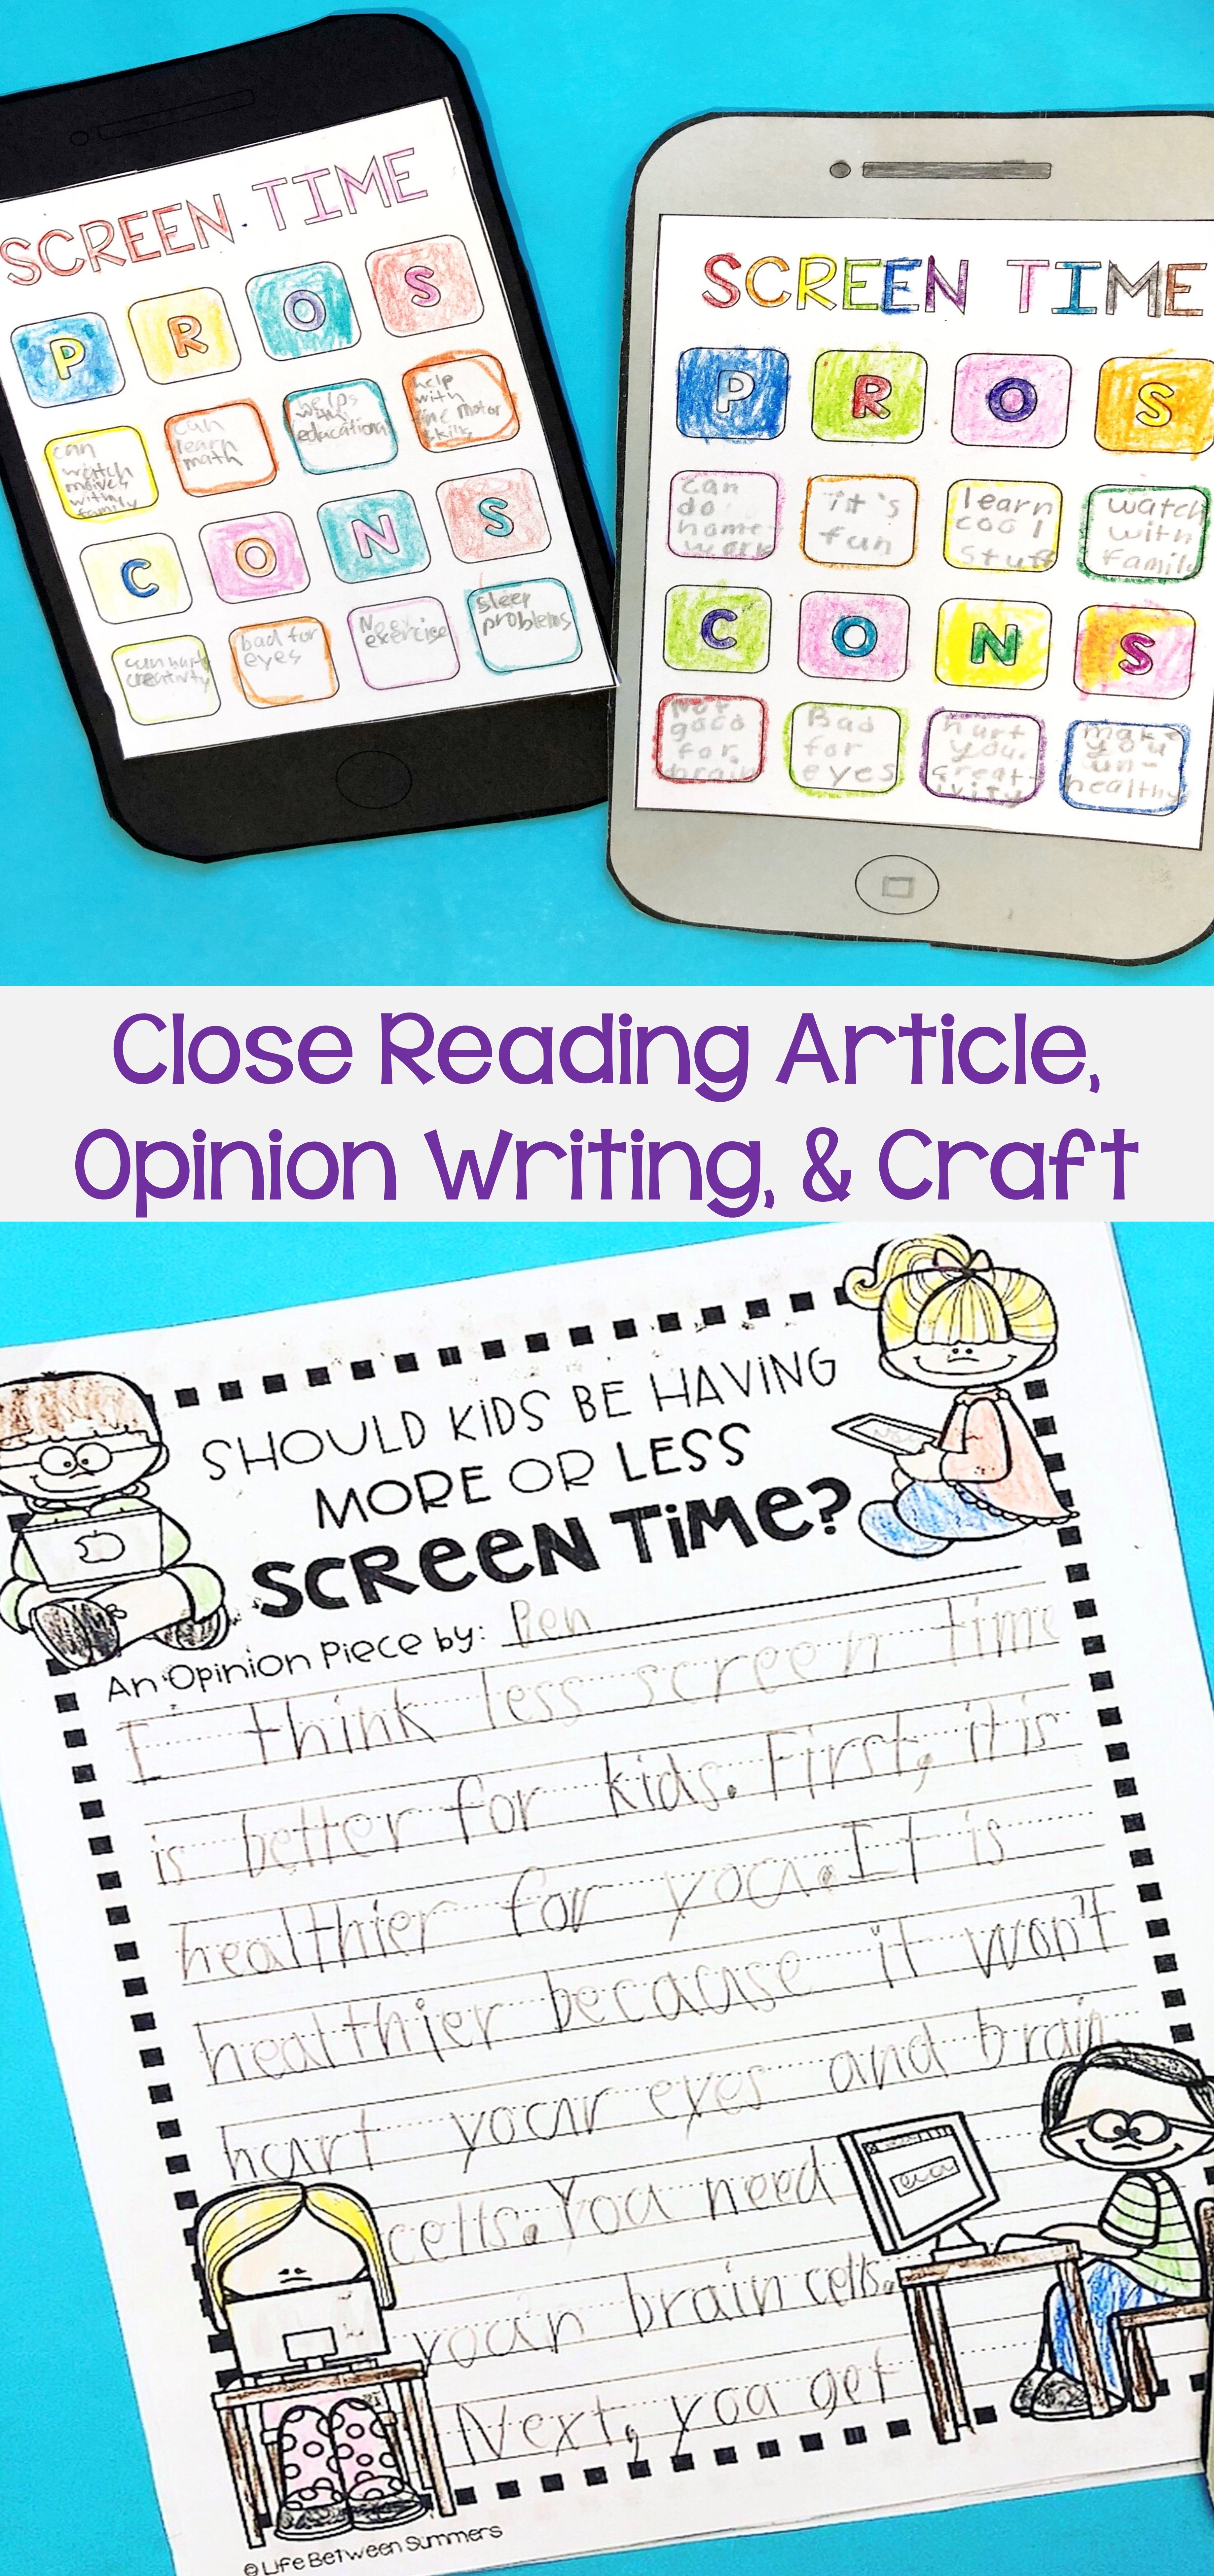 A relevant opinion writing topic for students! They do a close reading of an article about the pros and cons of screen time, write an opinion paragraph, and create an iPhone craft. Not only great reading comprehension and writing practice, but also  educates them about how  screen time can effect their own lives.